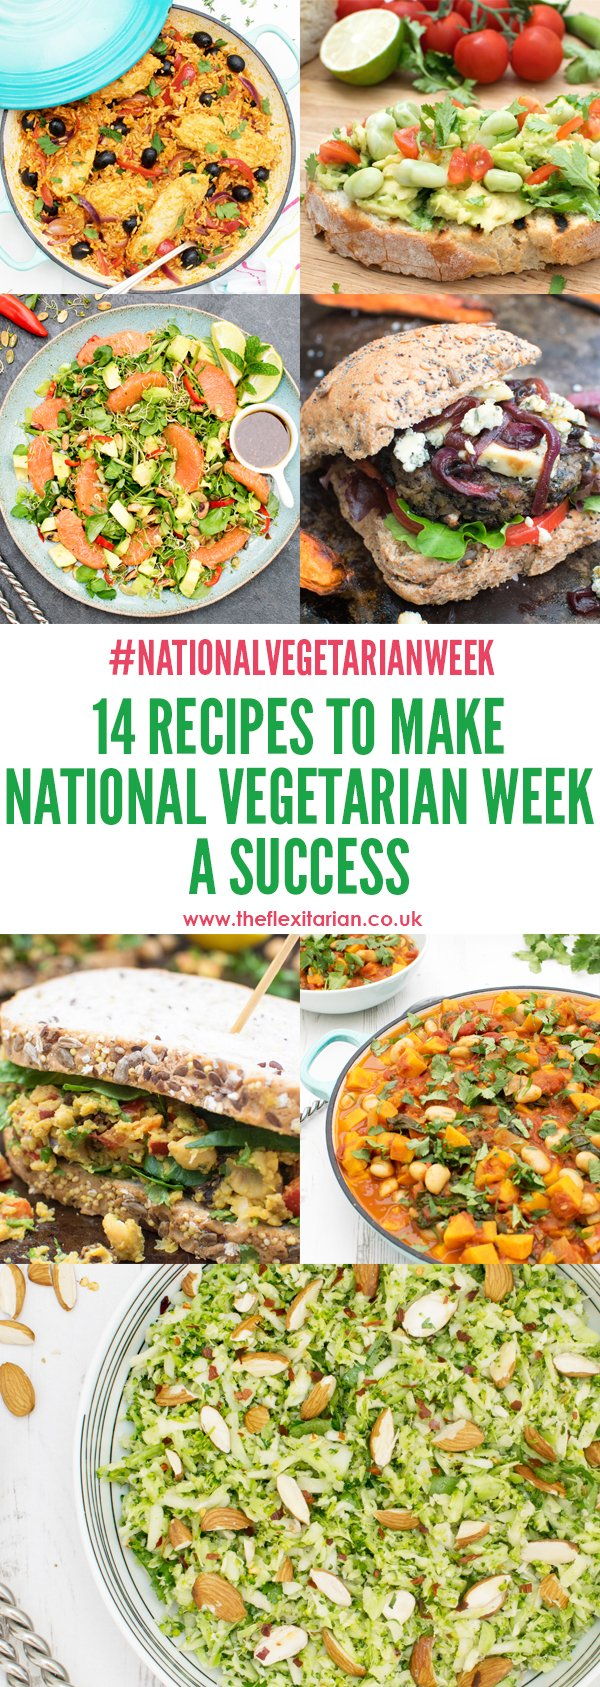 14 Recipes To Make This National Vegetarian Week A Success by The Flexitarian